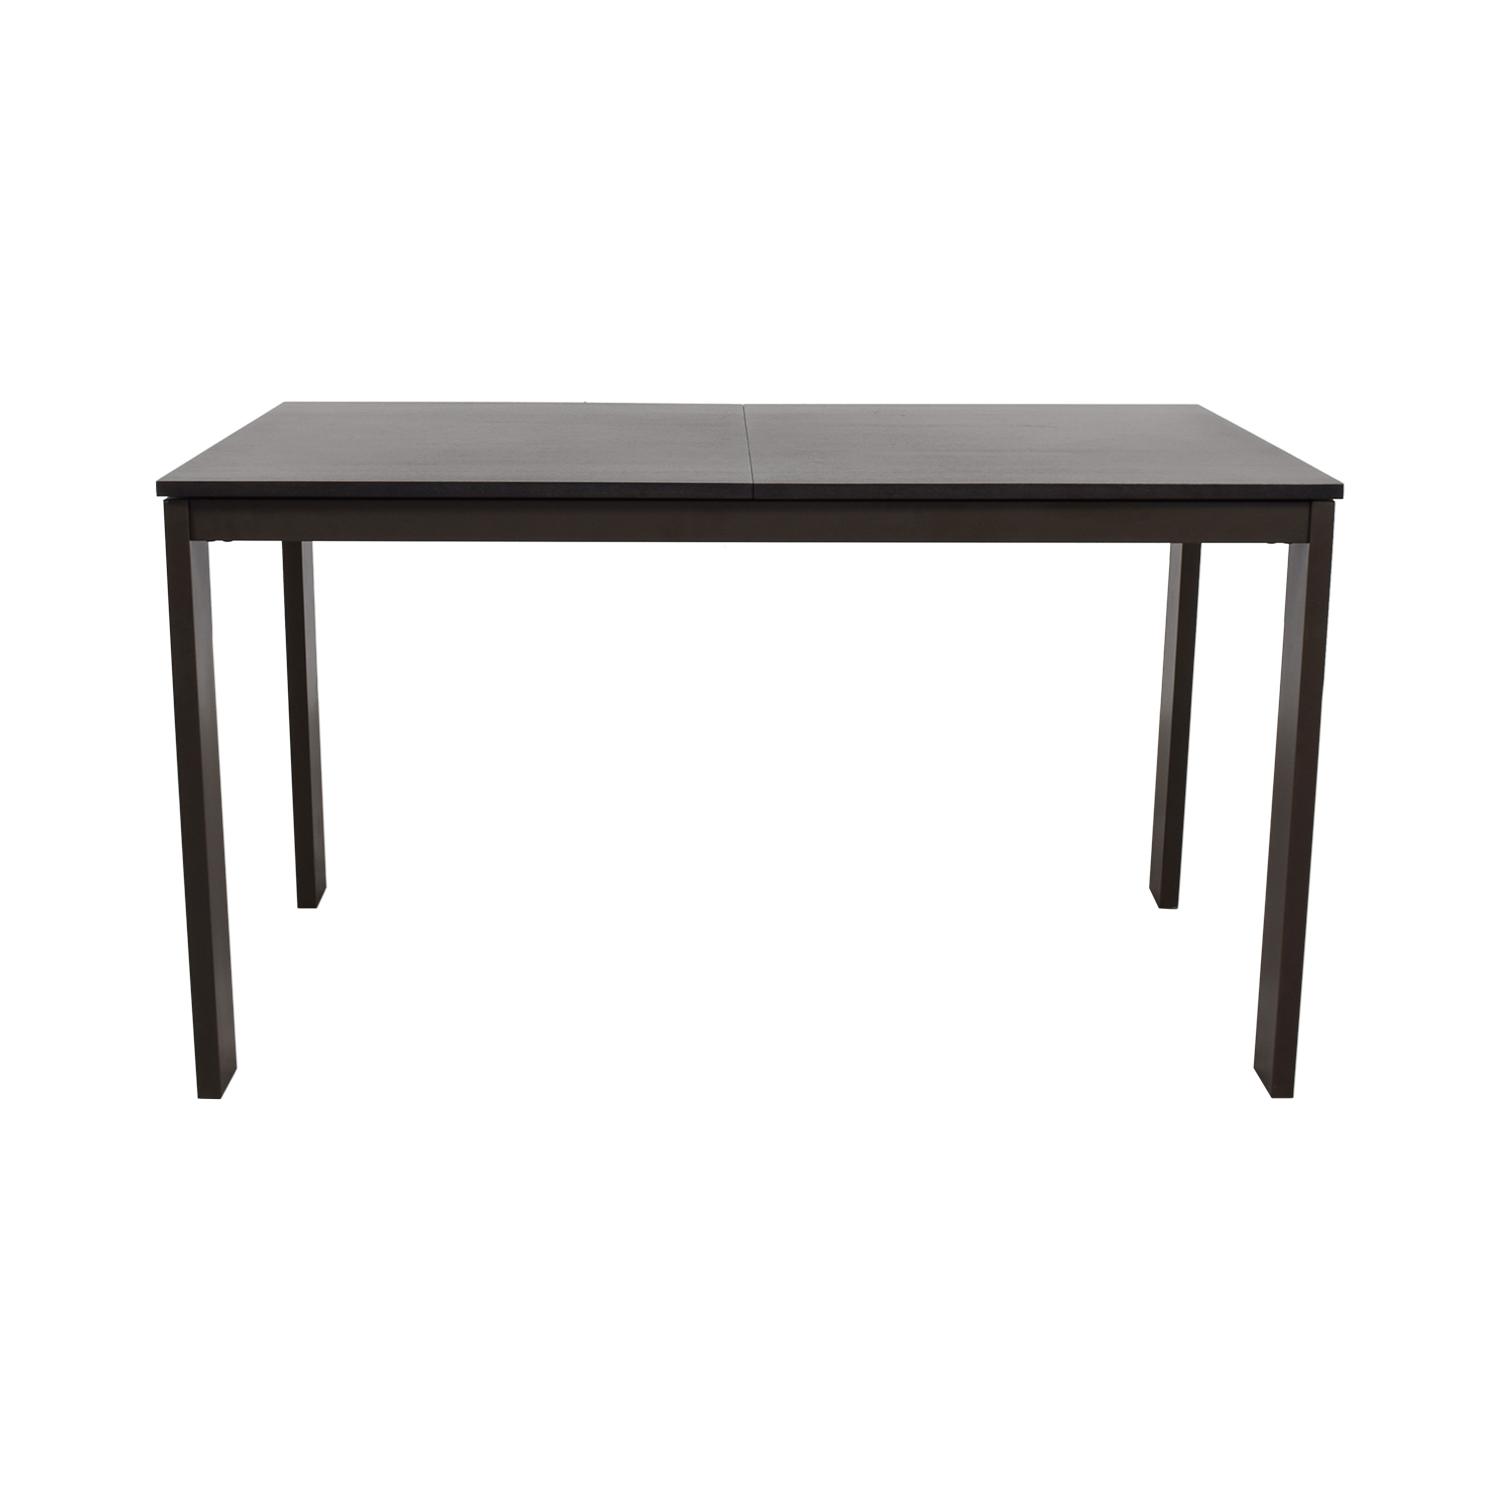 Cb2 Core Black Extension Dining Table Cb2